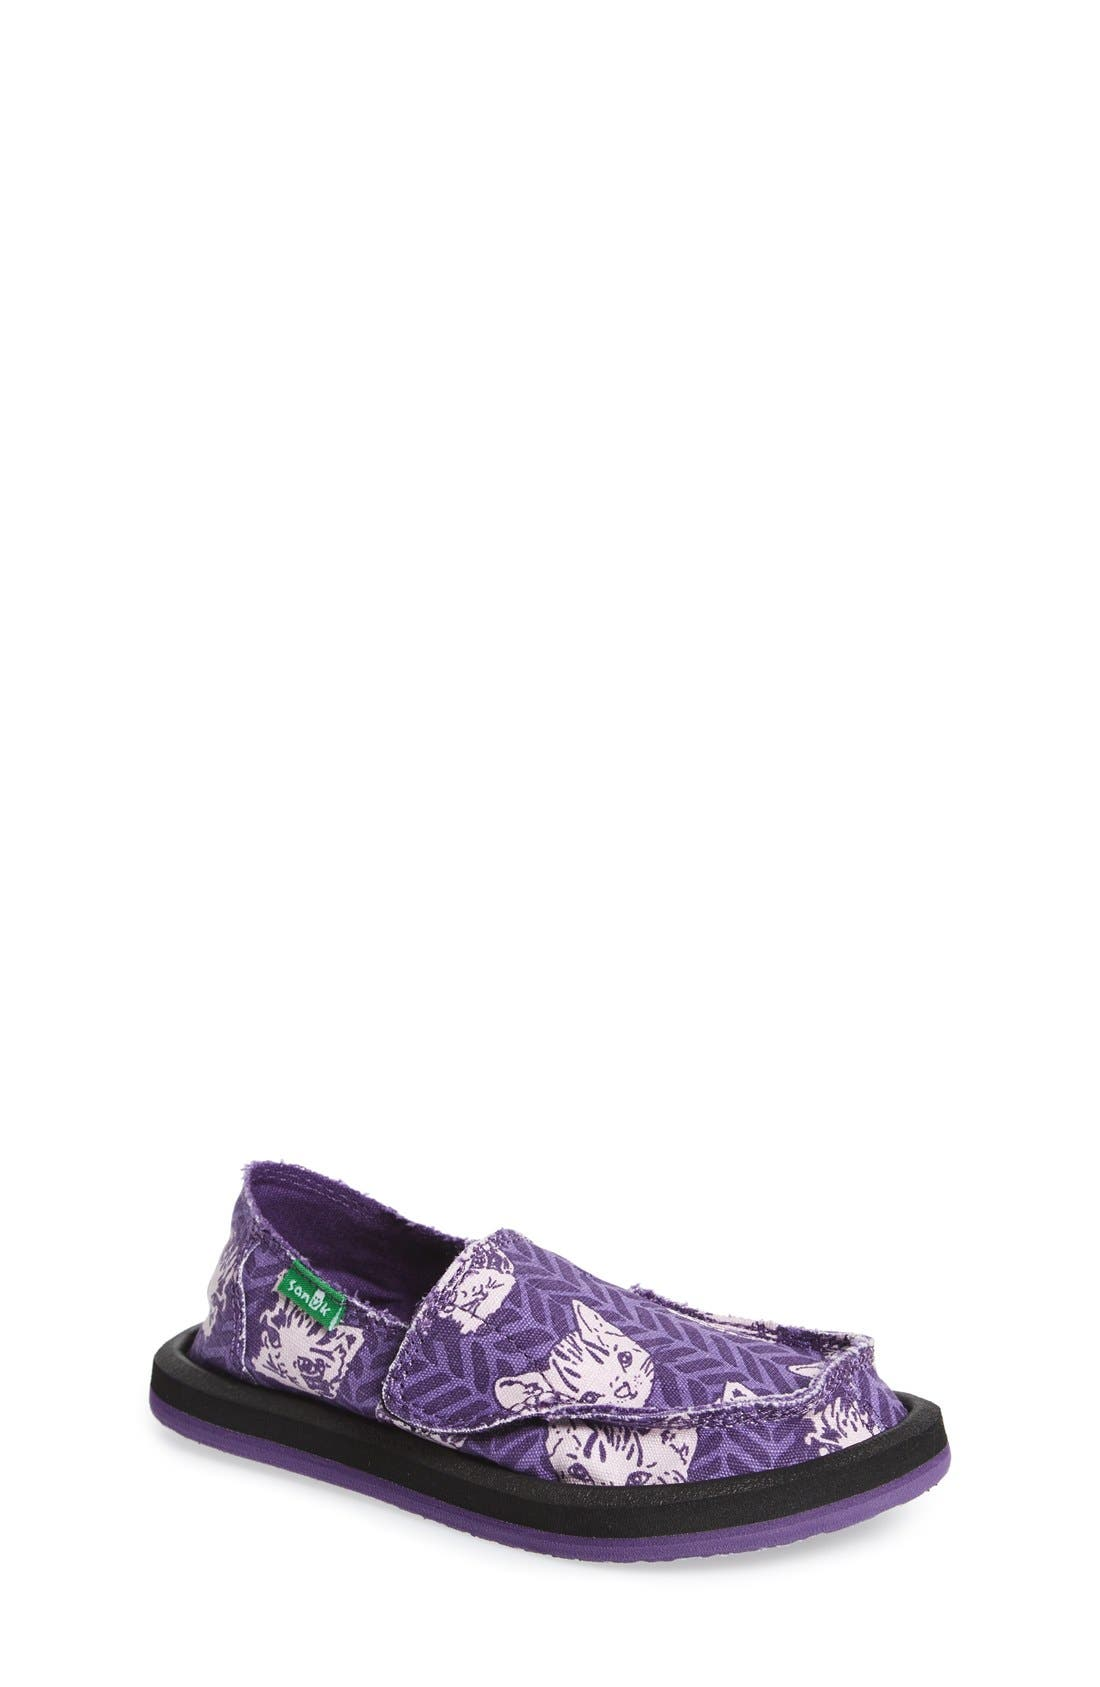 Sanuk 'Donna - Lil Icon' Cat Print Slip-On (Toddler, Little Kid & Big Kid)